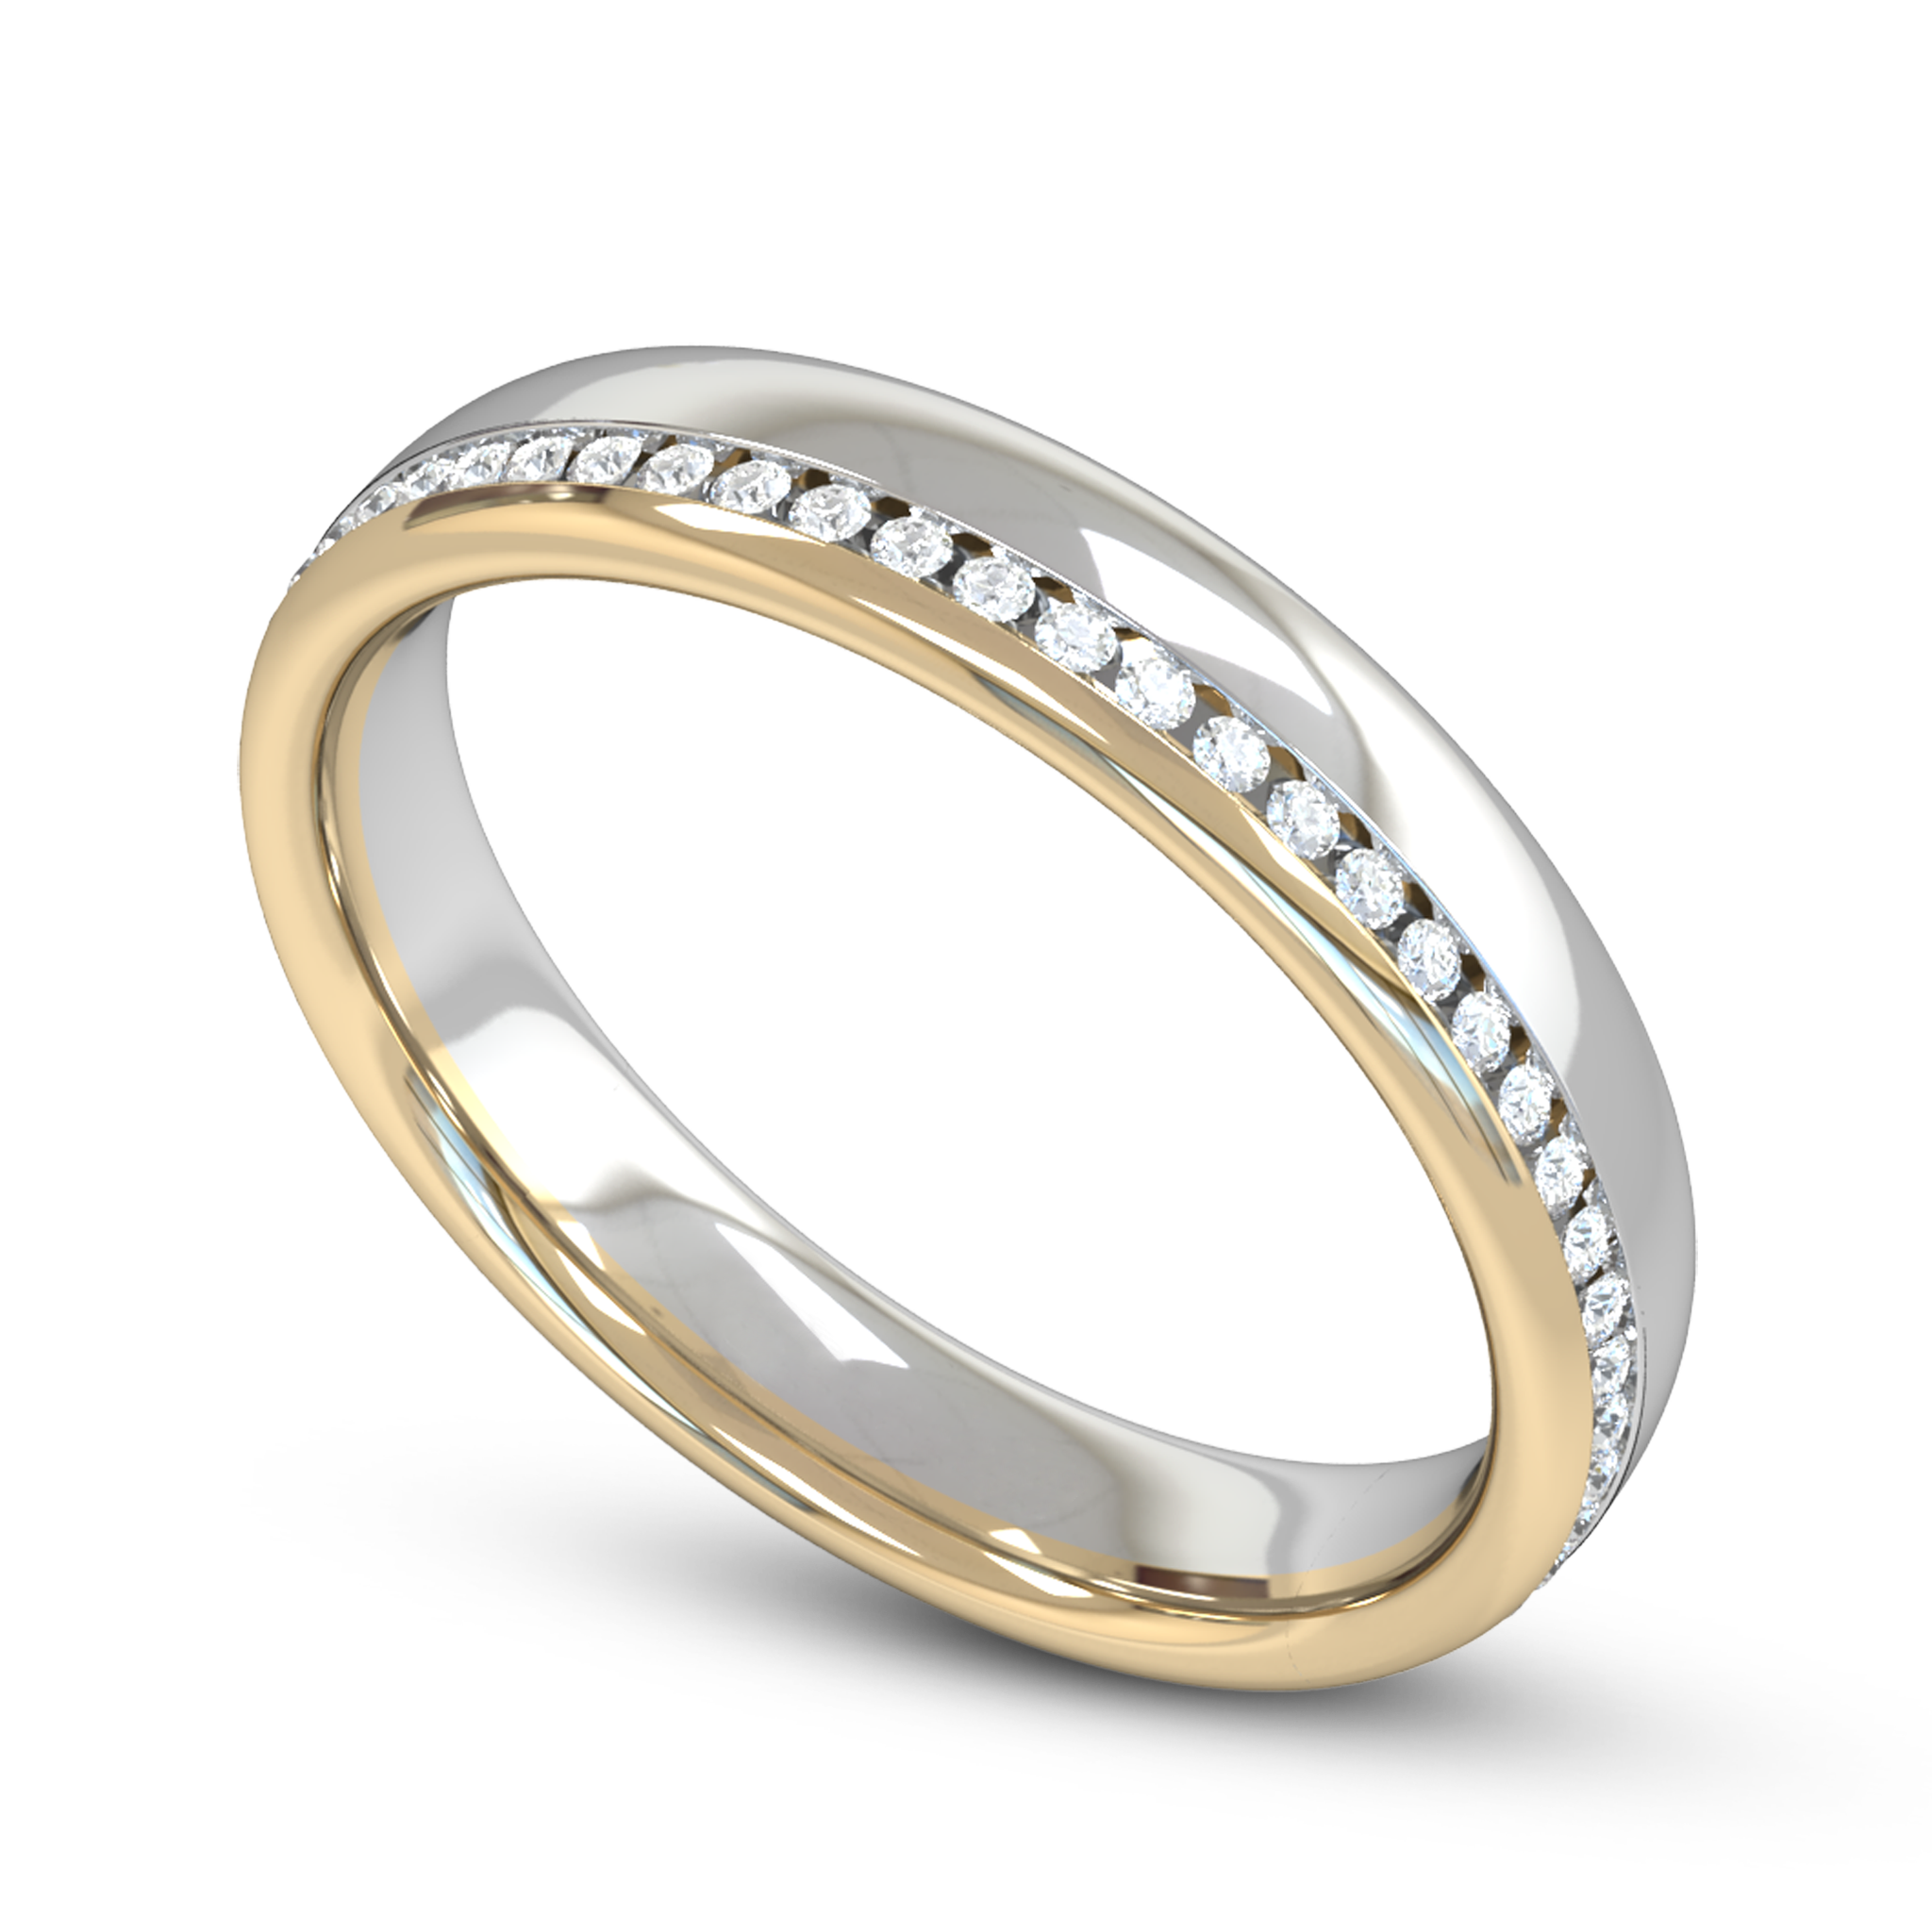 Diamond and Gem Fairtrade Gold Eternity Ring in